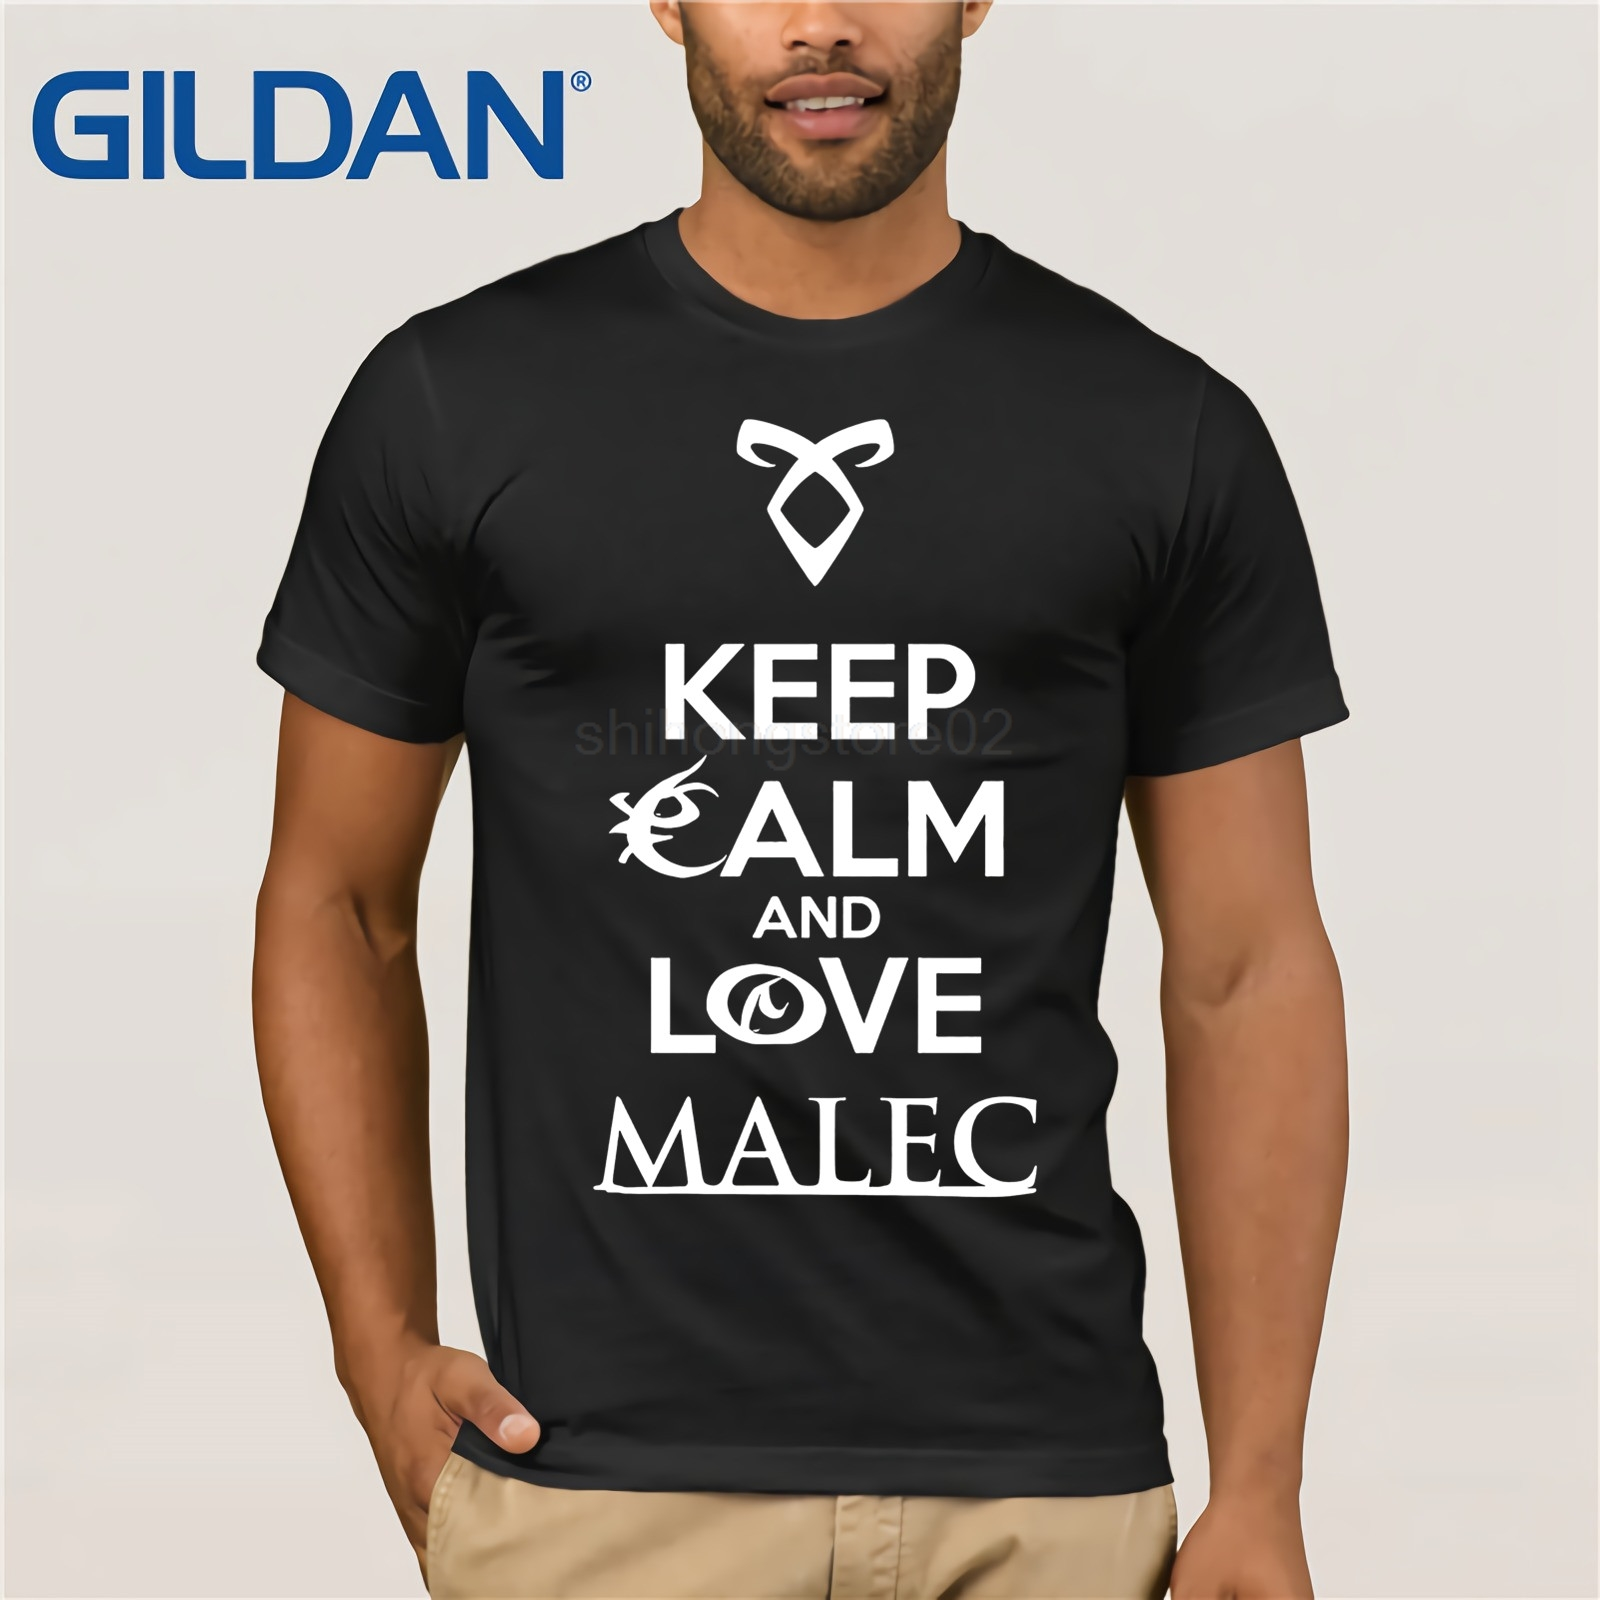 Shadowhunters The Mortal Instruments - Keep Calm And Love Malec - Magnus <font><b>Bane</b></font> And Alec Lightwood - Gift Idea T-<font><b>Shirt</b></font> image